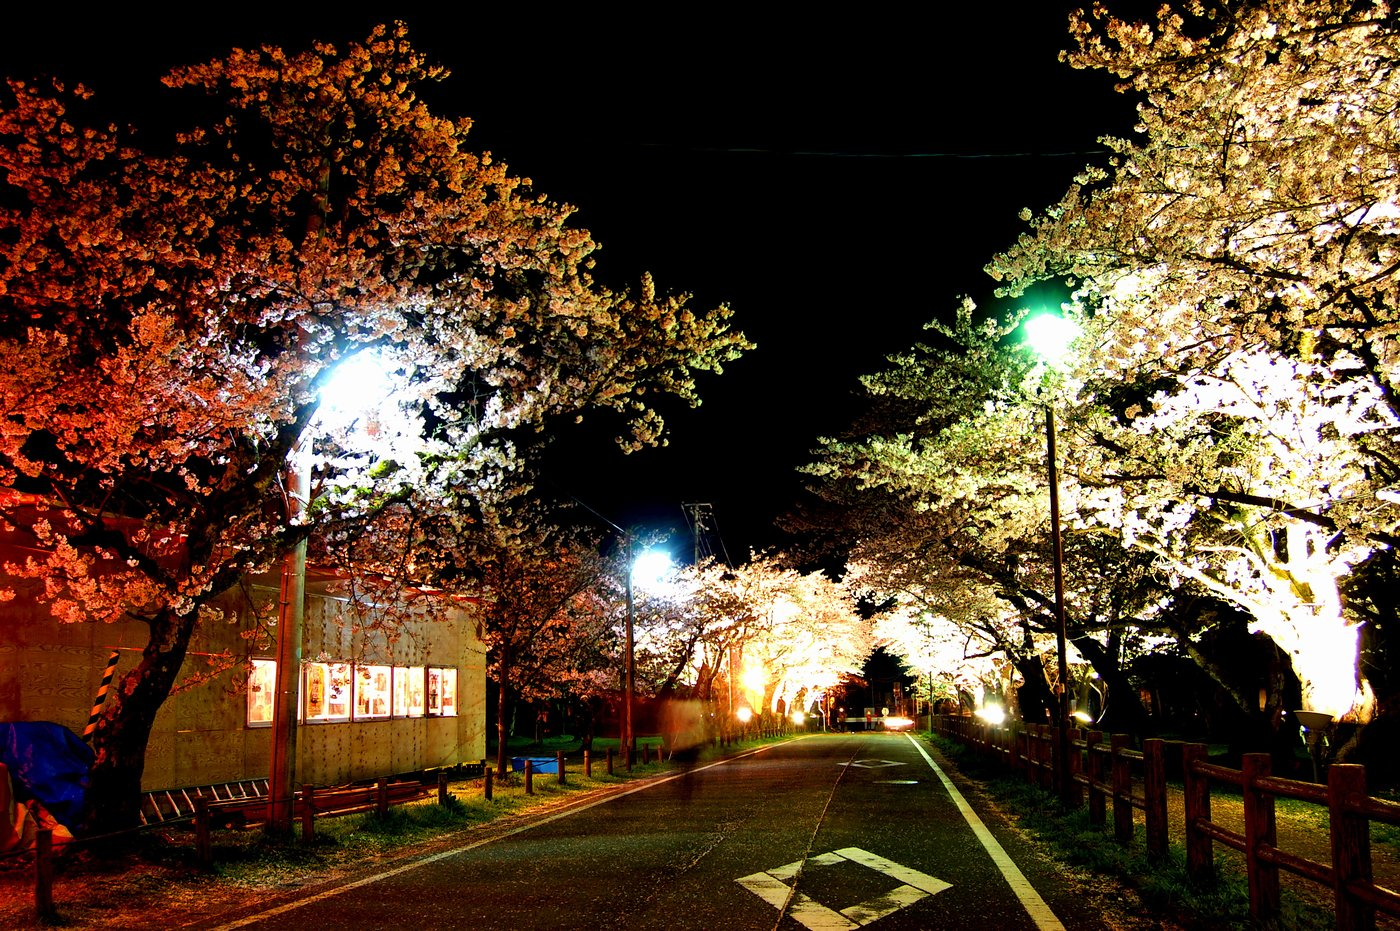 Night View of Cherry Blossoms